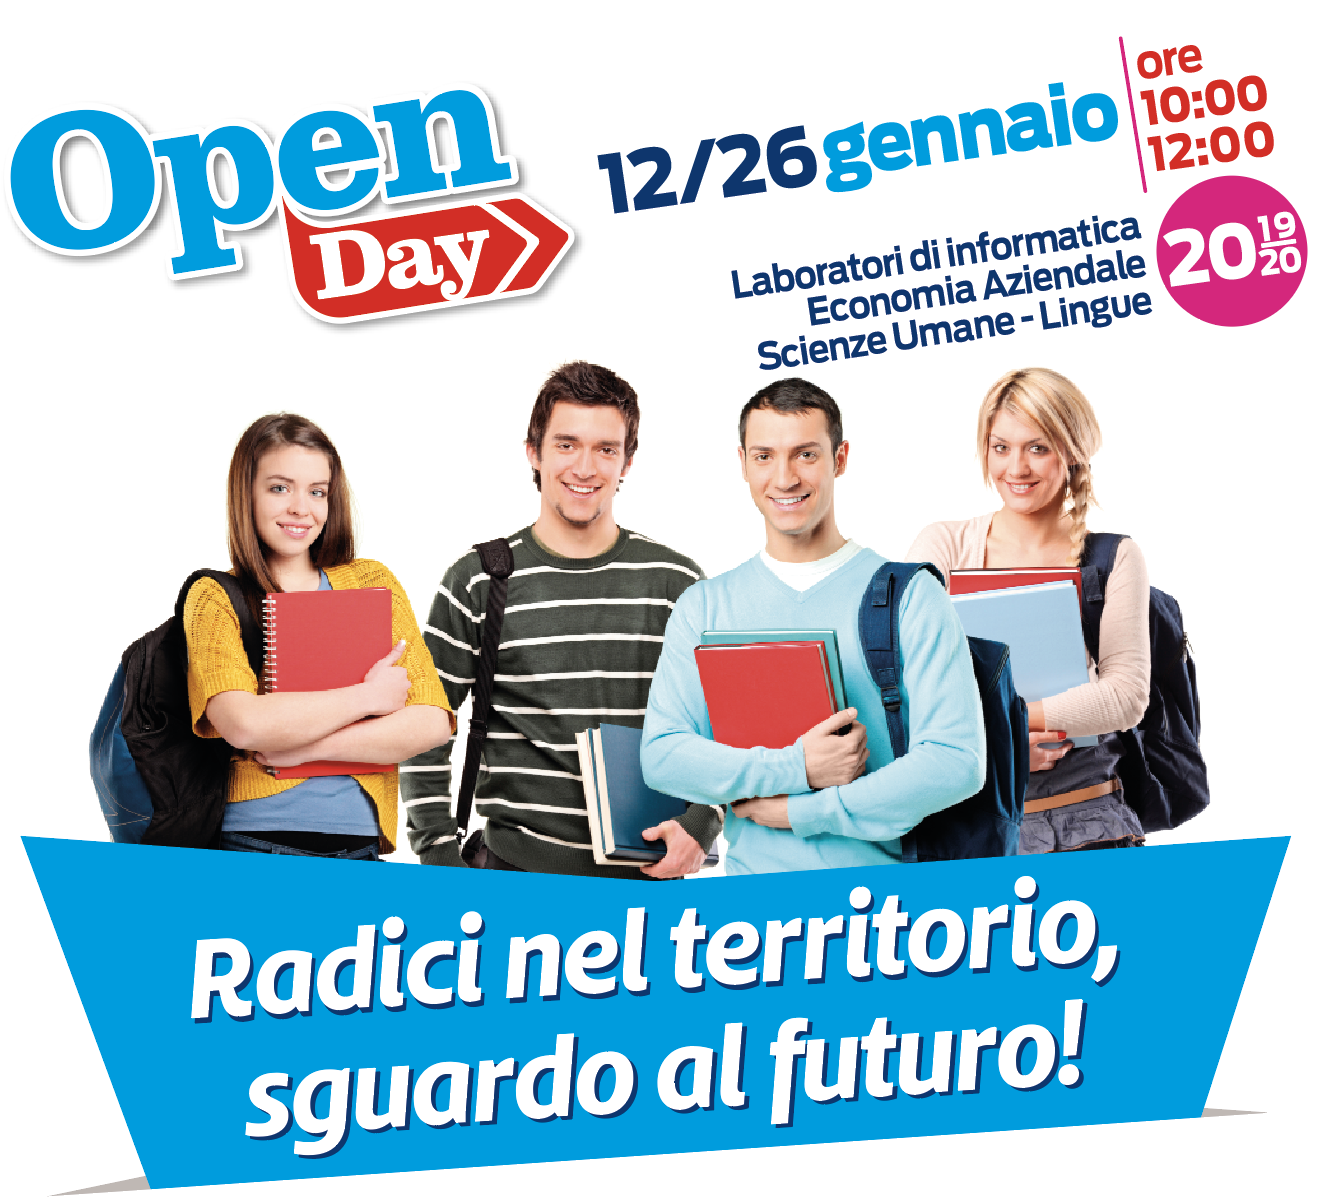 Open day: